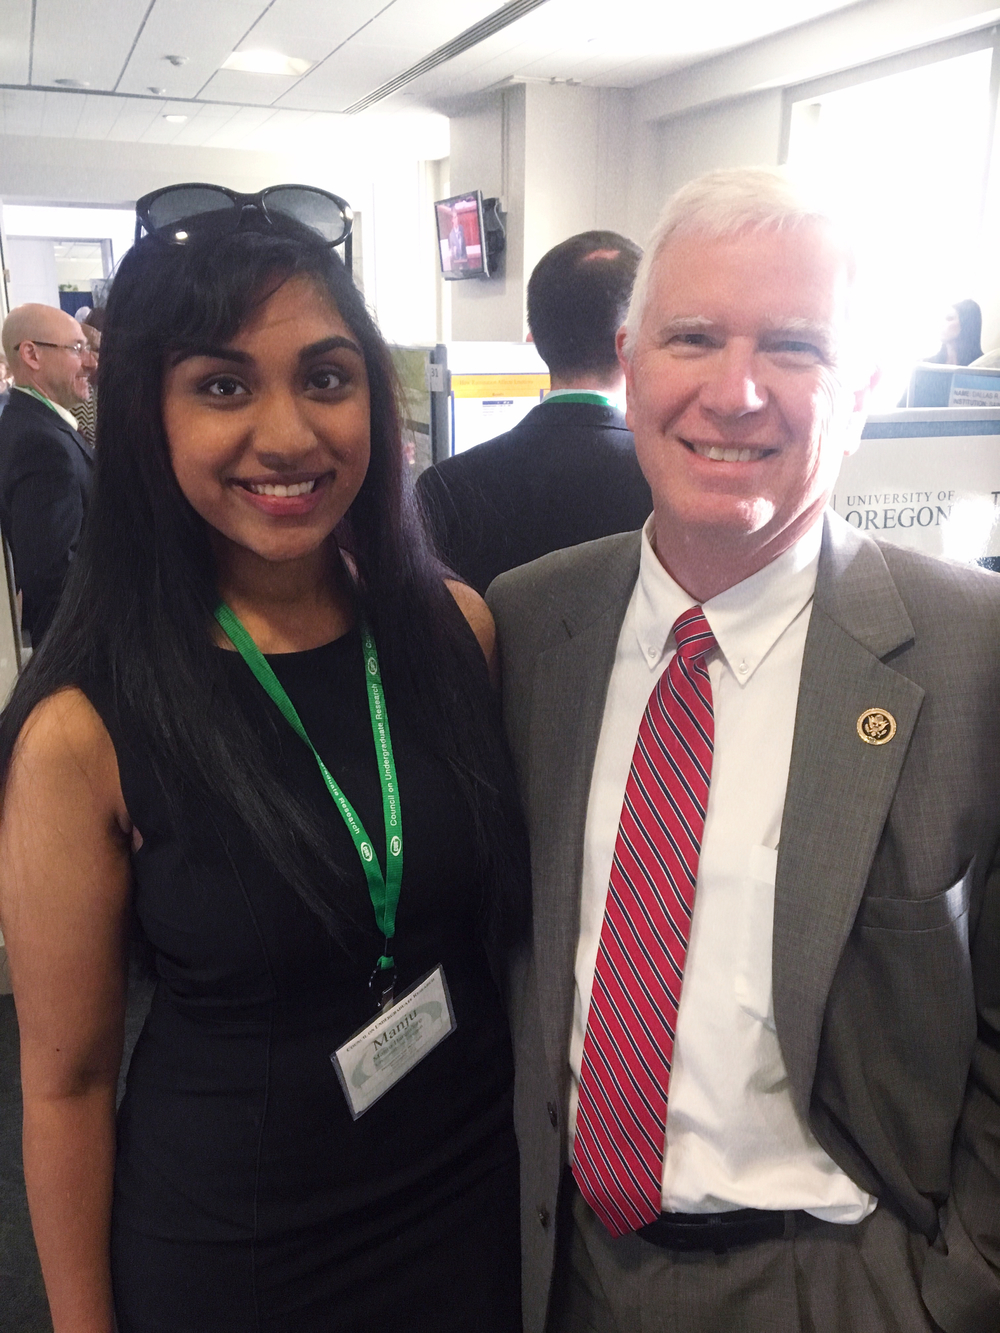 Hanging out with Representative Mo Brooks.